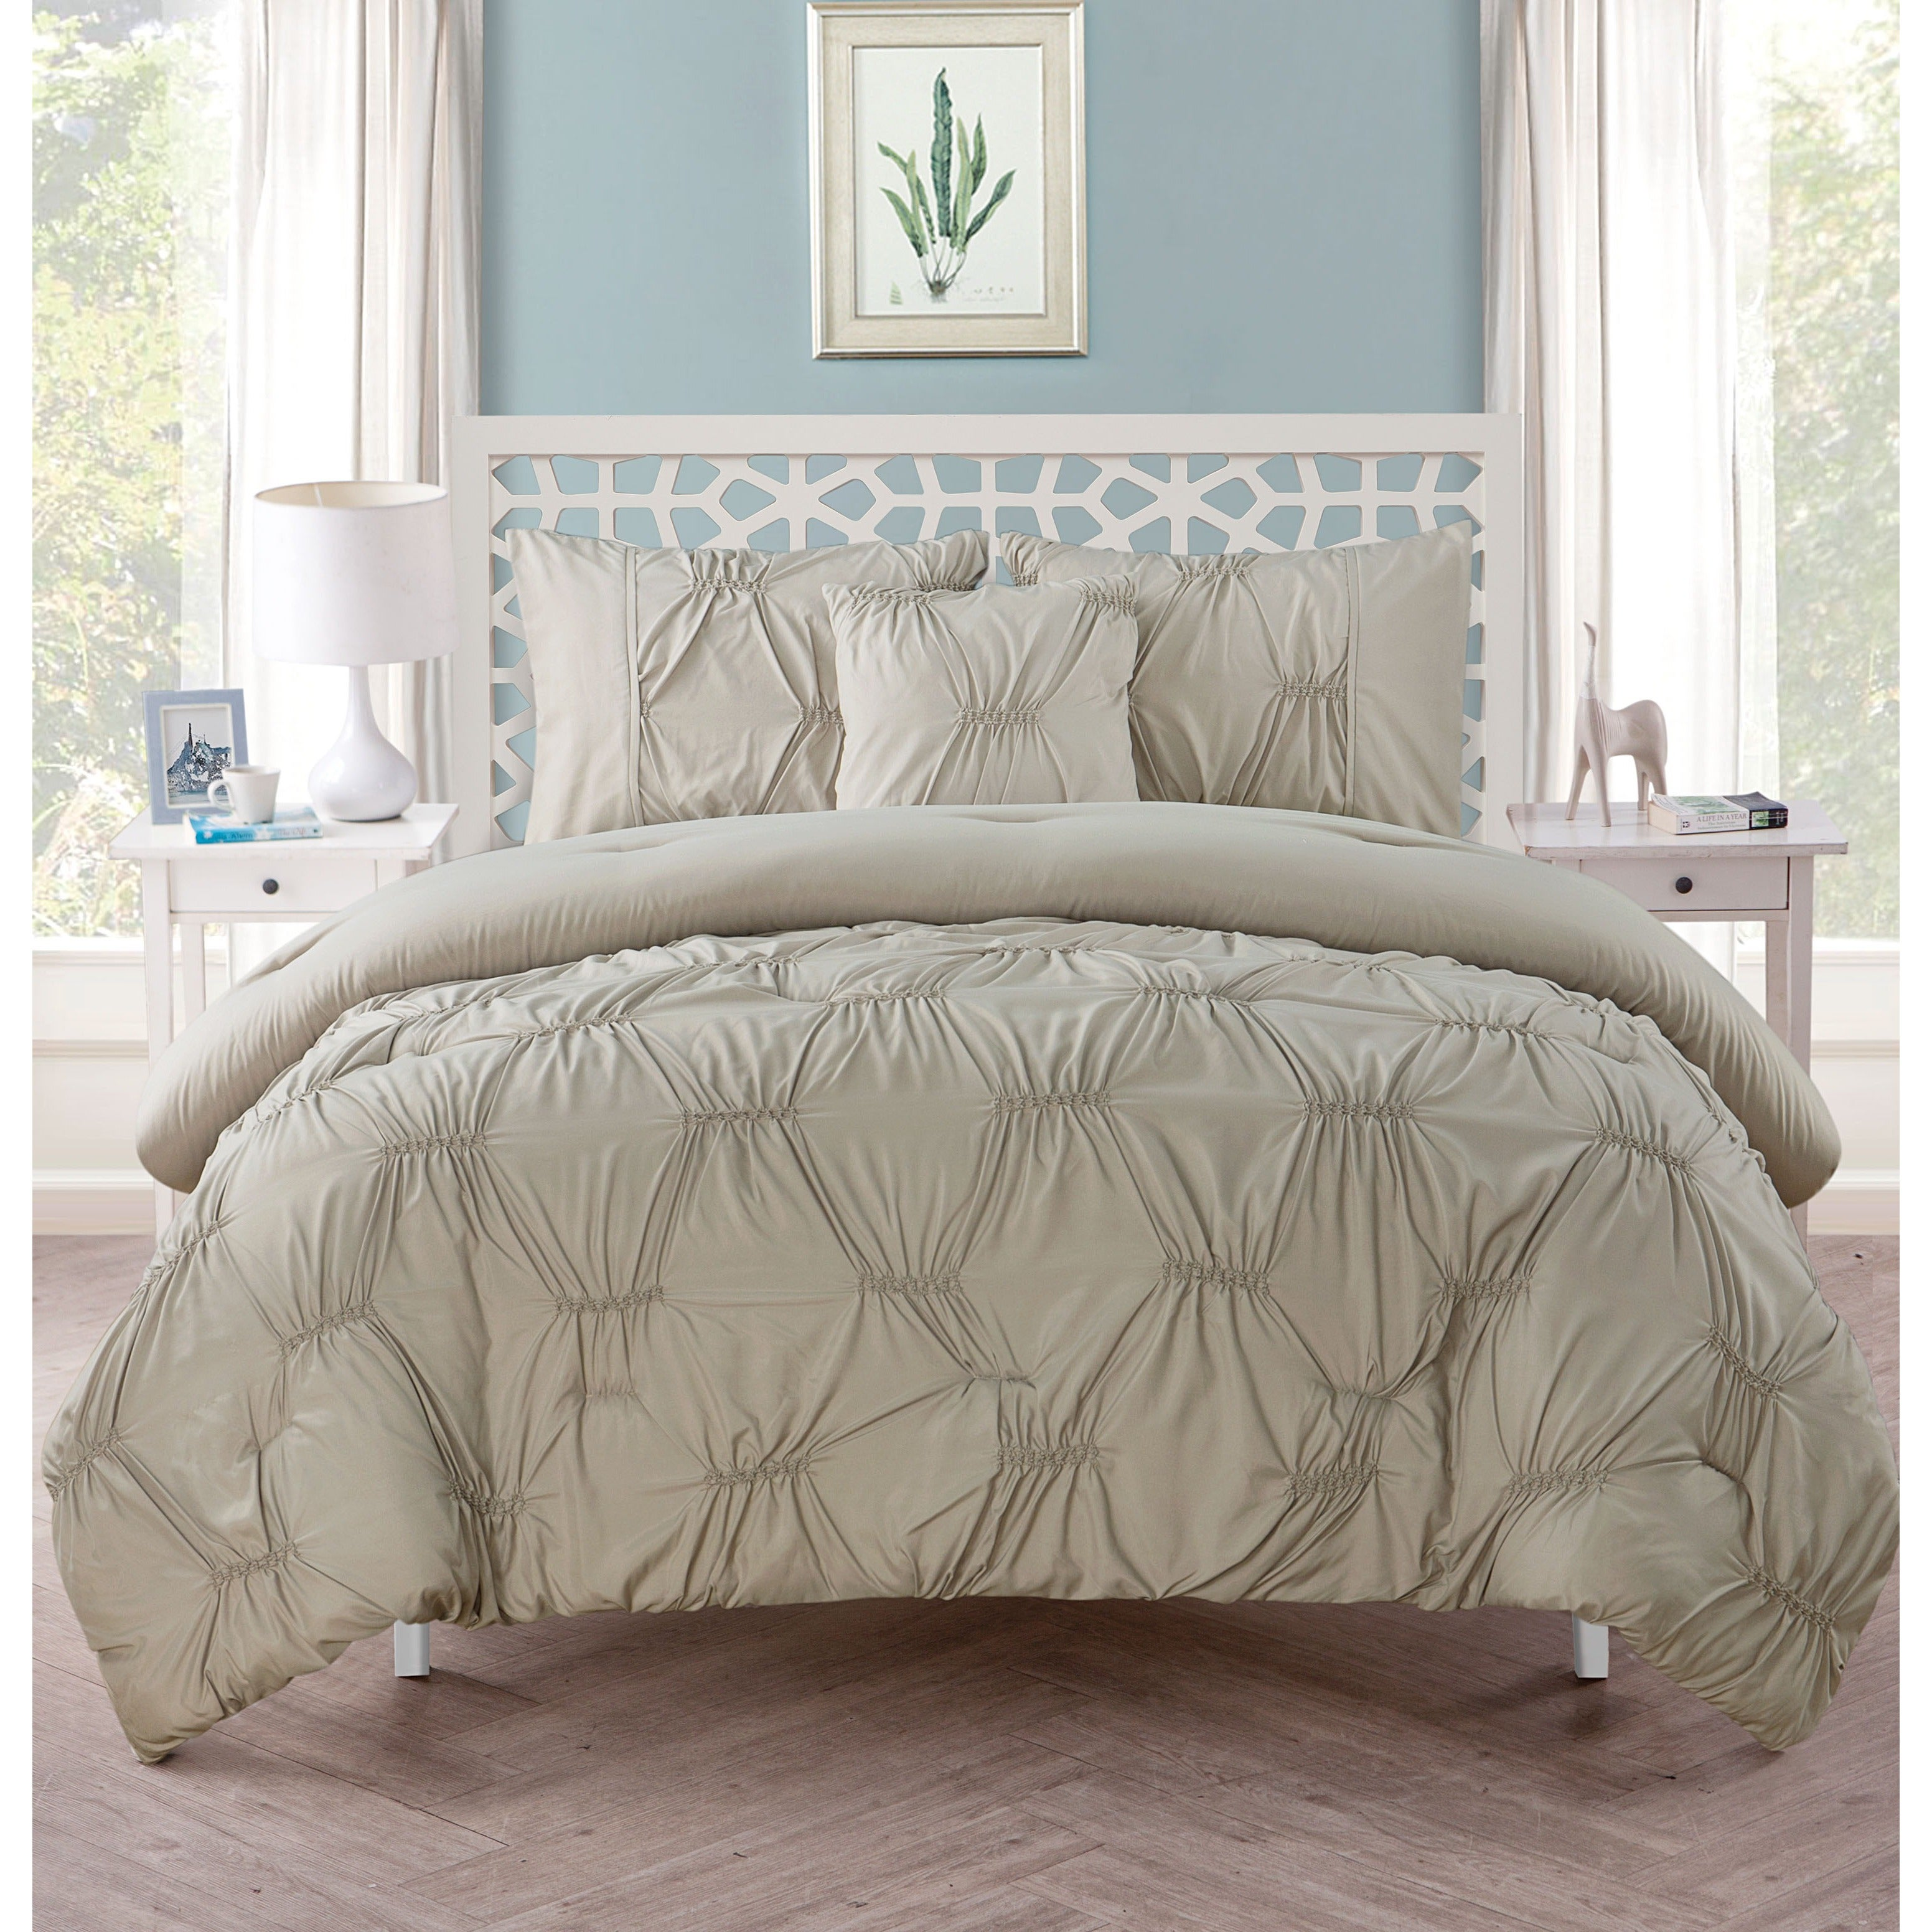 Vcny Marchella Gathered 4 Piece Comforter Set Free Shipping Today 10566971